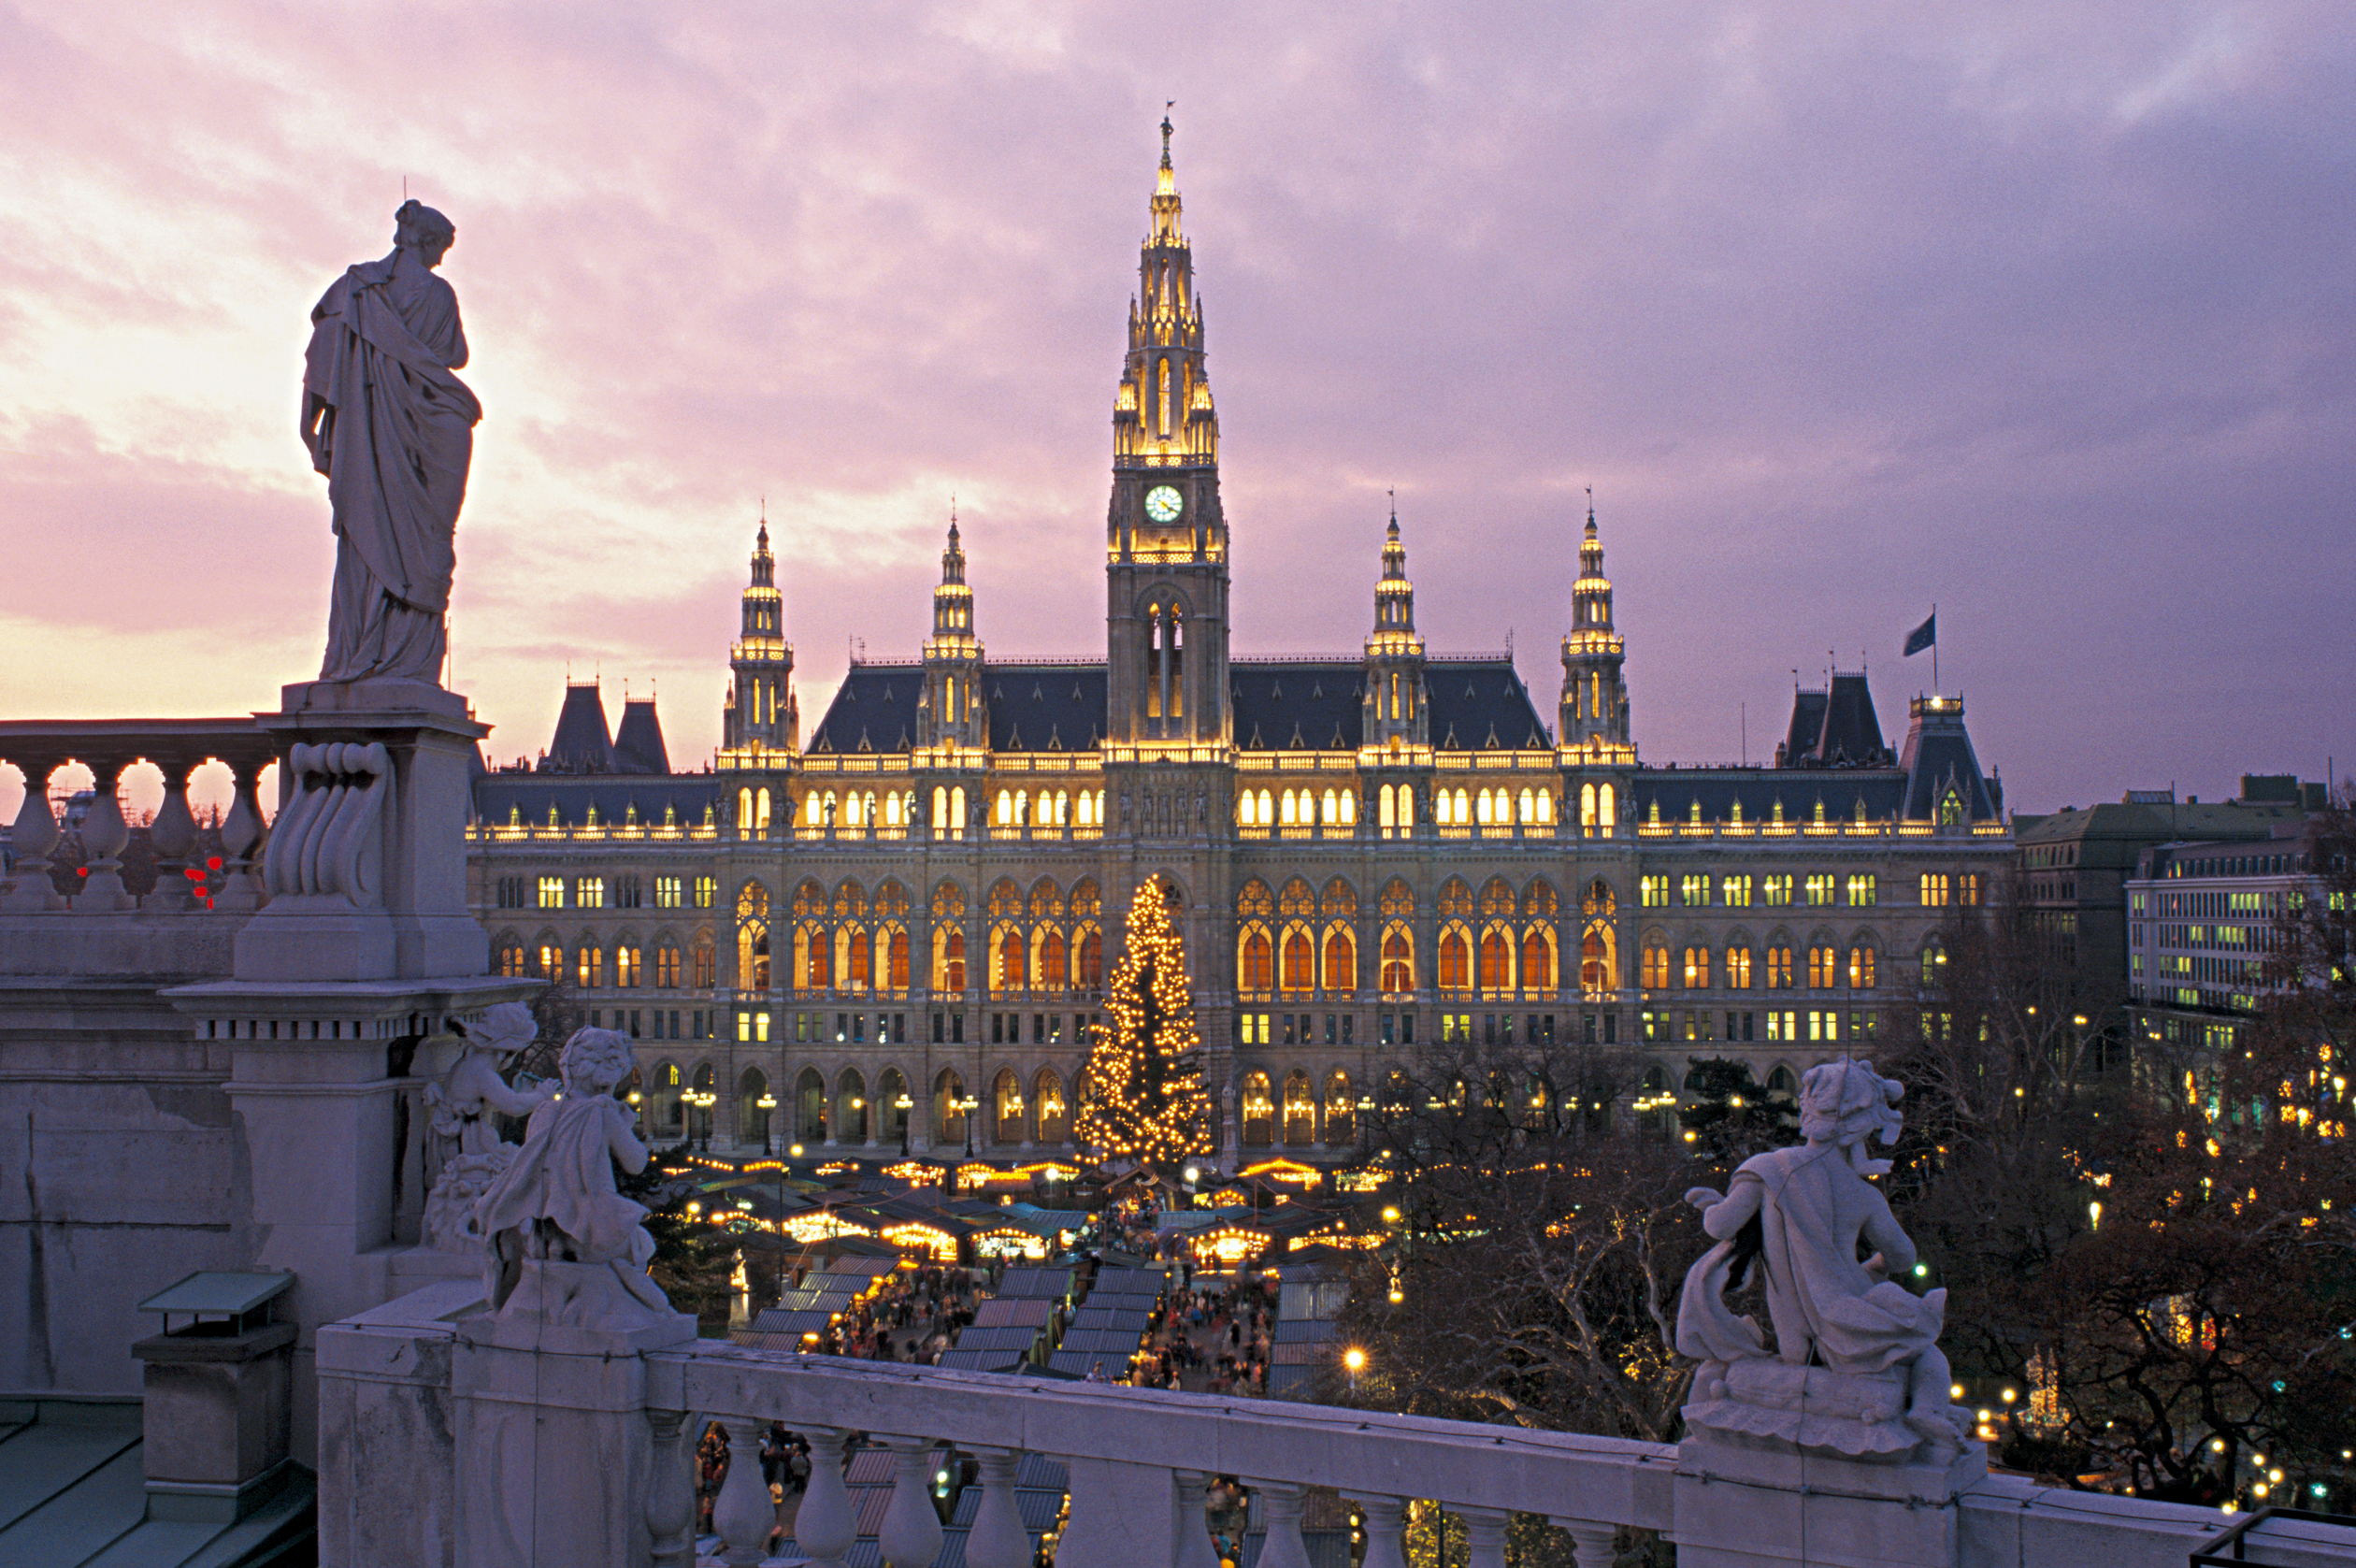 Wien, Ringstrasse, Rathaus, Adventzauber - Travelogged.com